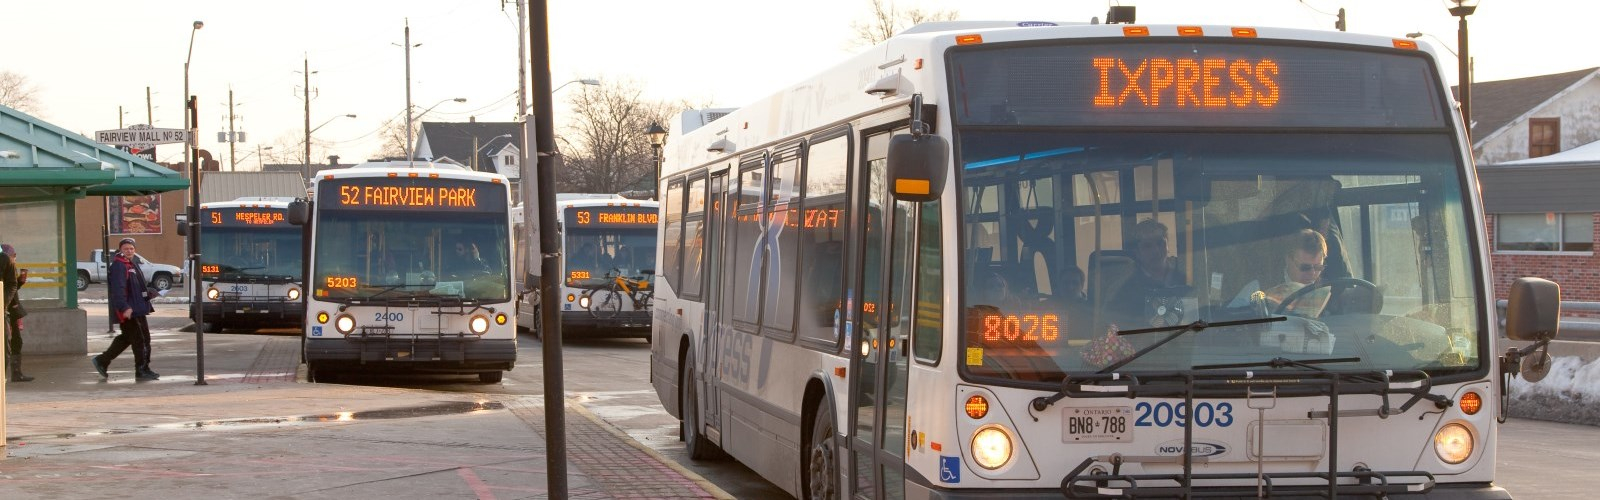 Picture of multiple buses at the terminal